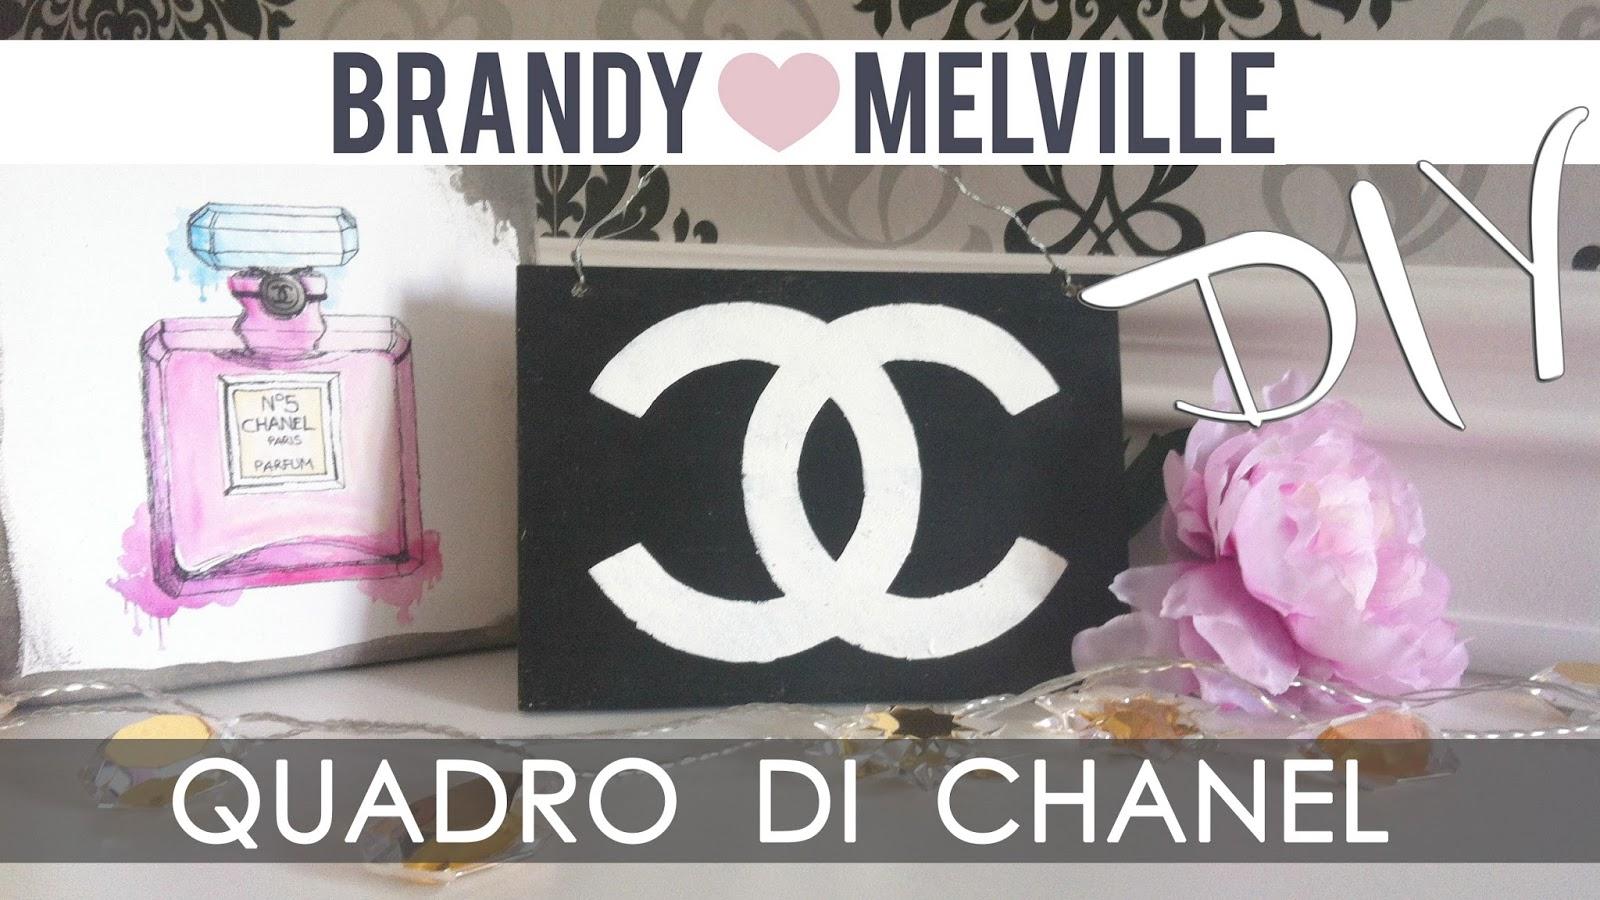 http://serenaloserlikeme.blogspot.it/2014/07/diy-room-decor-brandy-melville-inspired.html